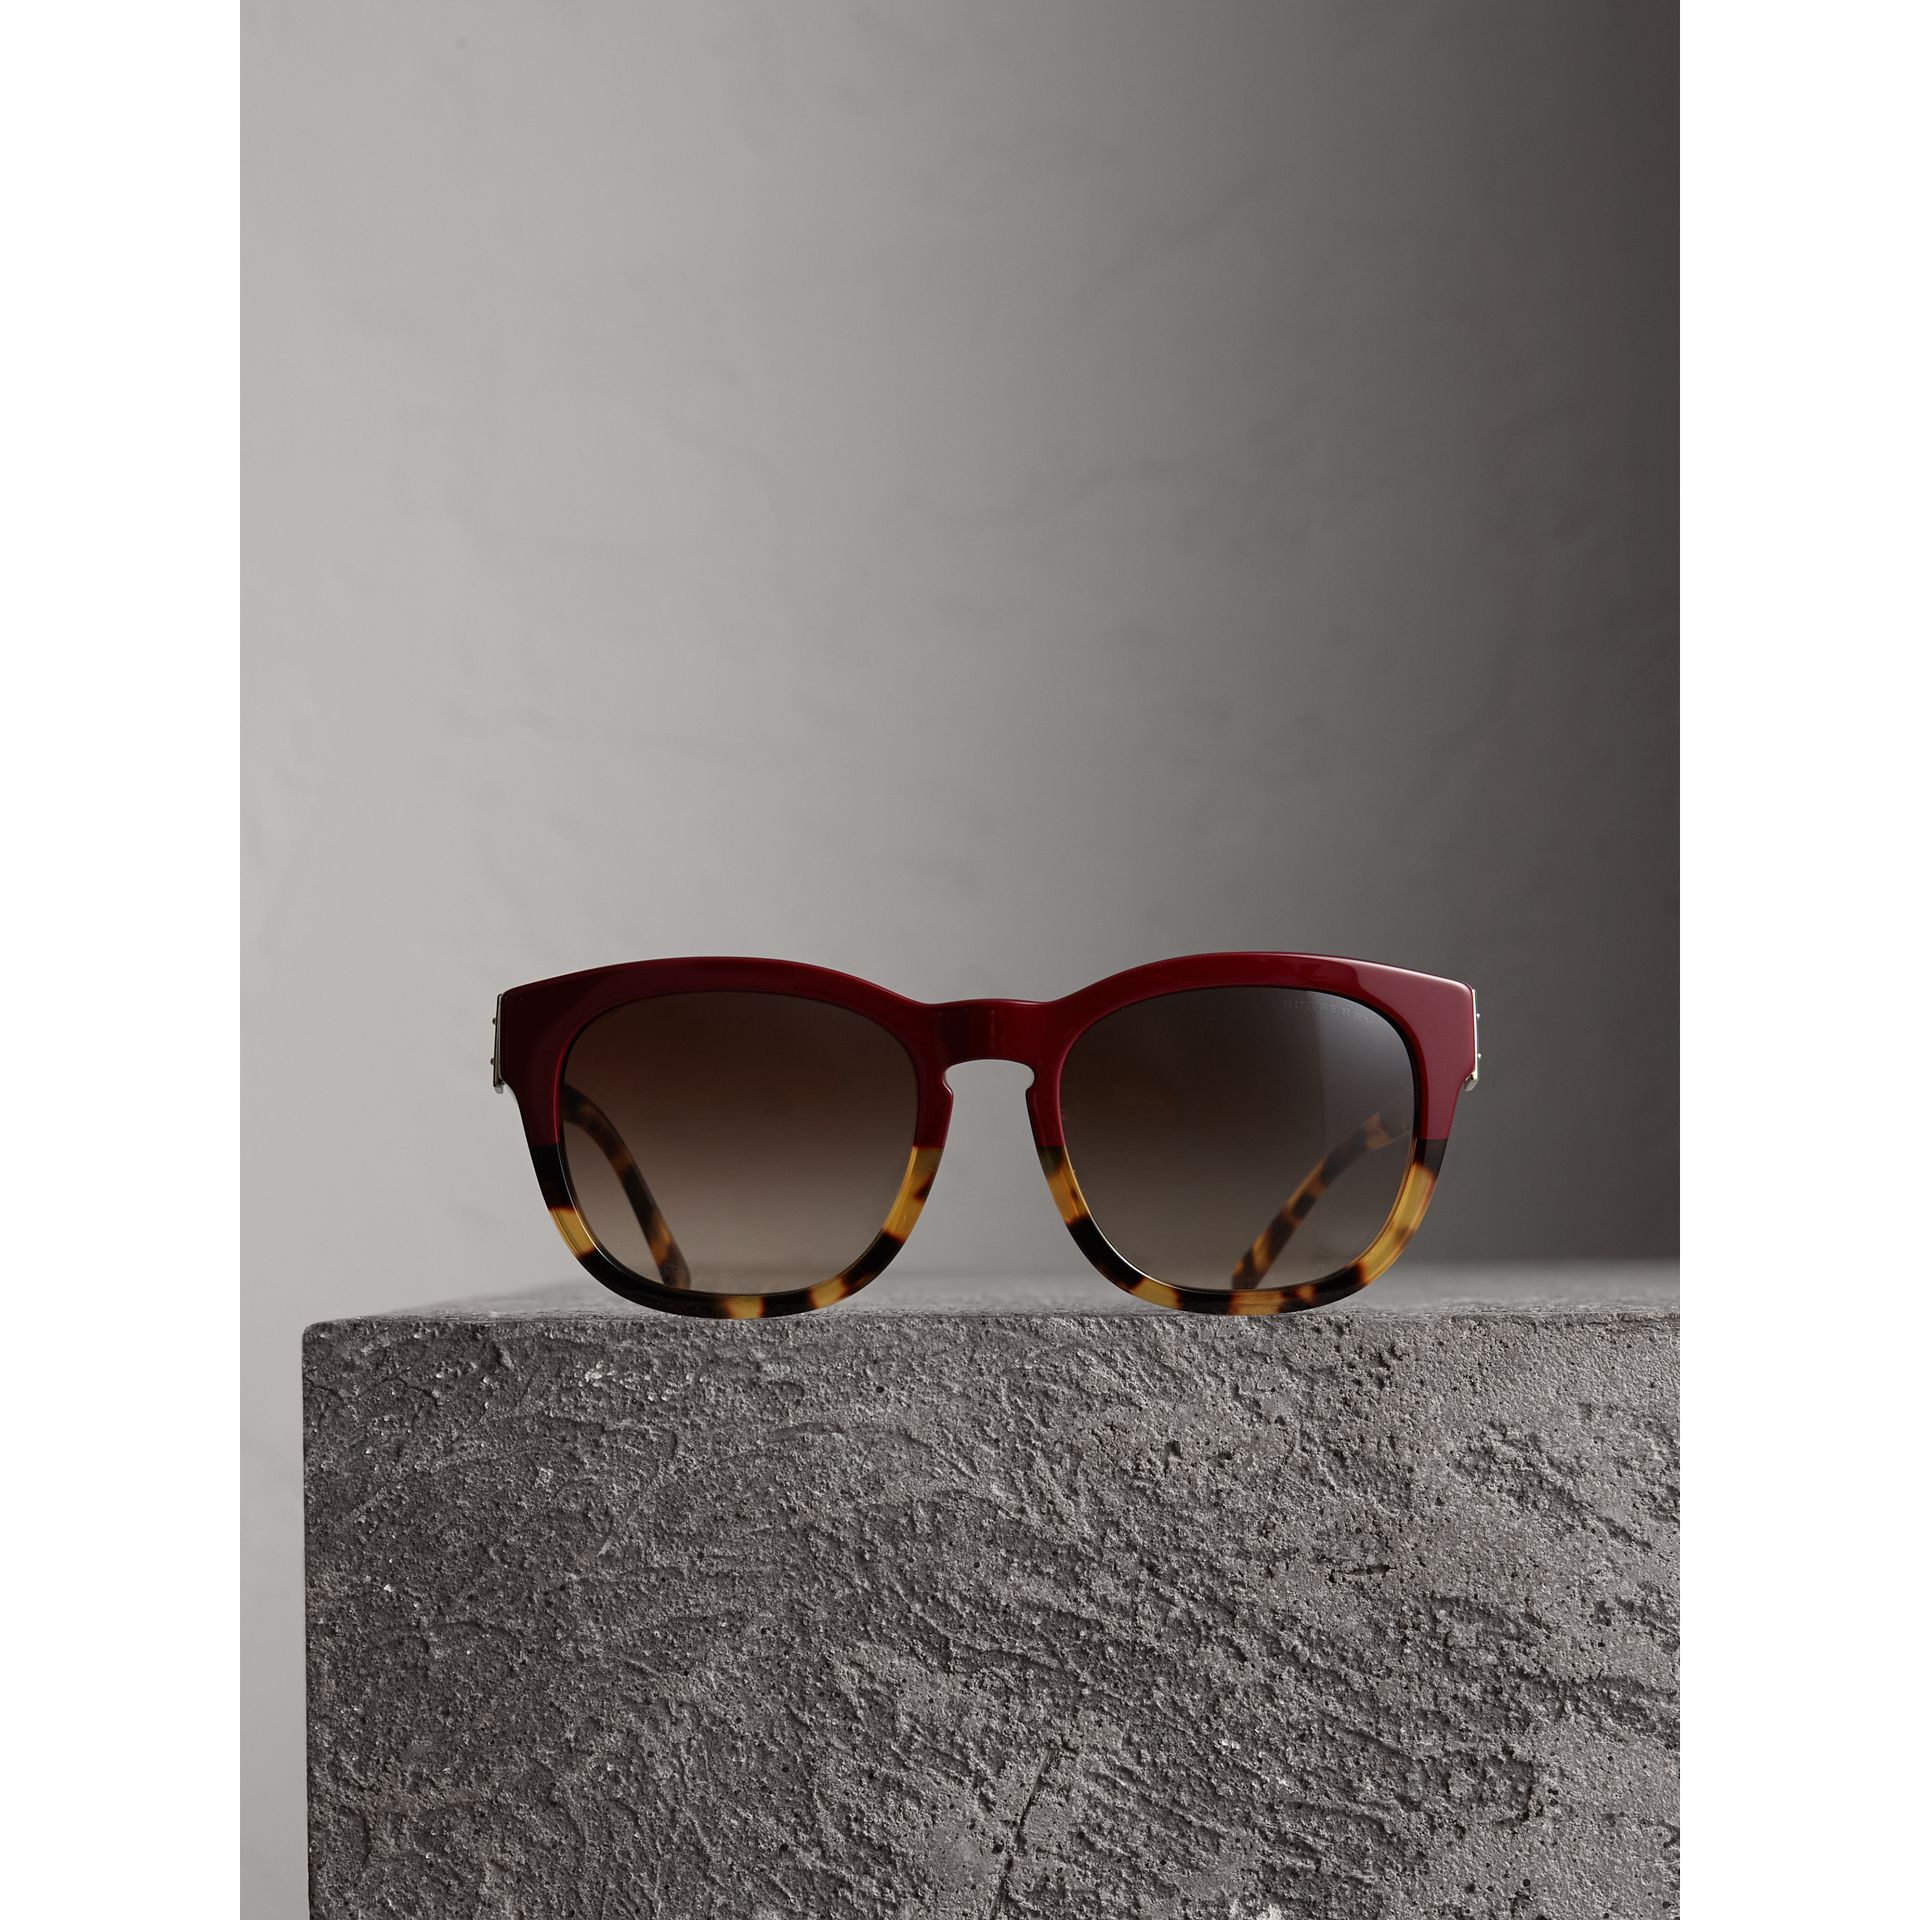 Buckle Detail Square Frame Sunglasses in Burgundy - Women | Burberry - gallery image 3